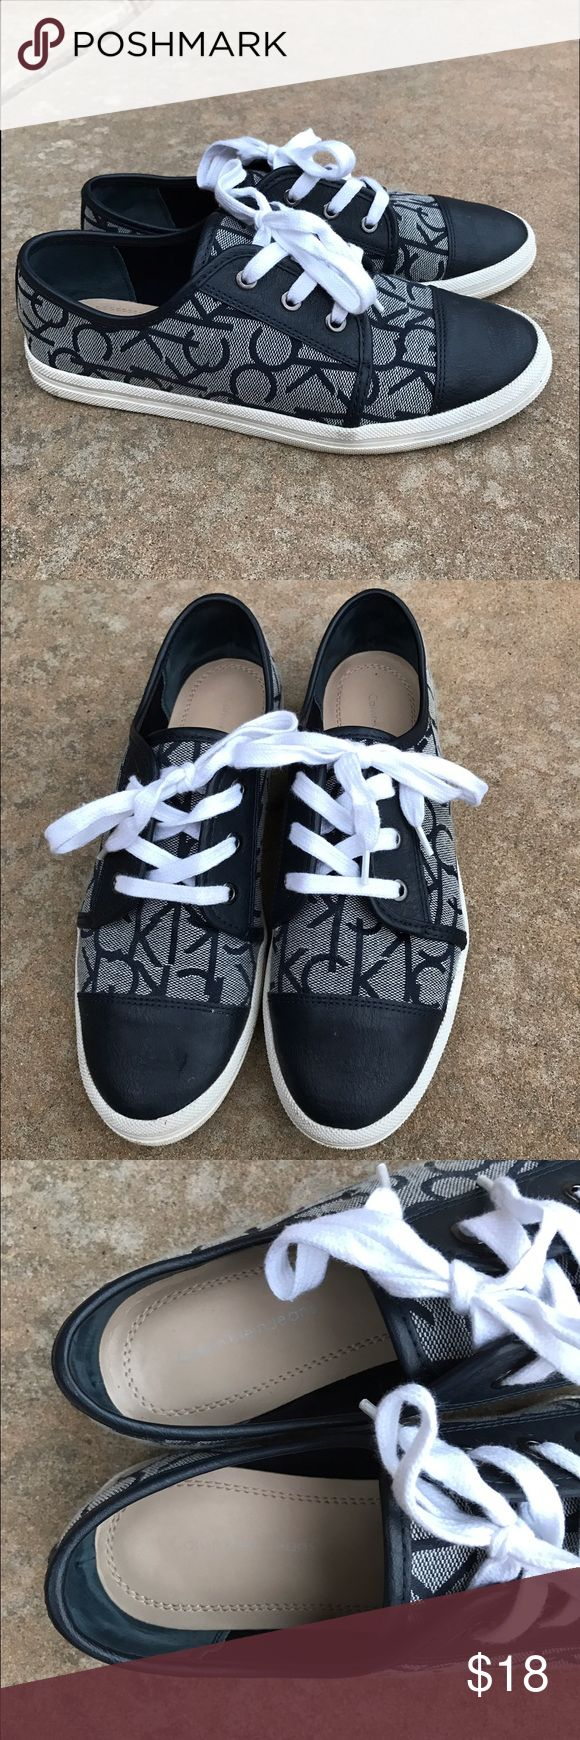 """Calvin Klein Merlinda Sneakers """"Merlinda"""" navy blue sneakers or tennis shoes size 7.5 in excellent condition. Only worn twice. Calvin Klein Shoes Sneakers"""